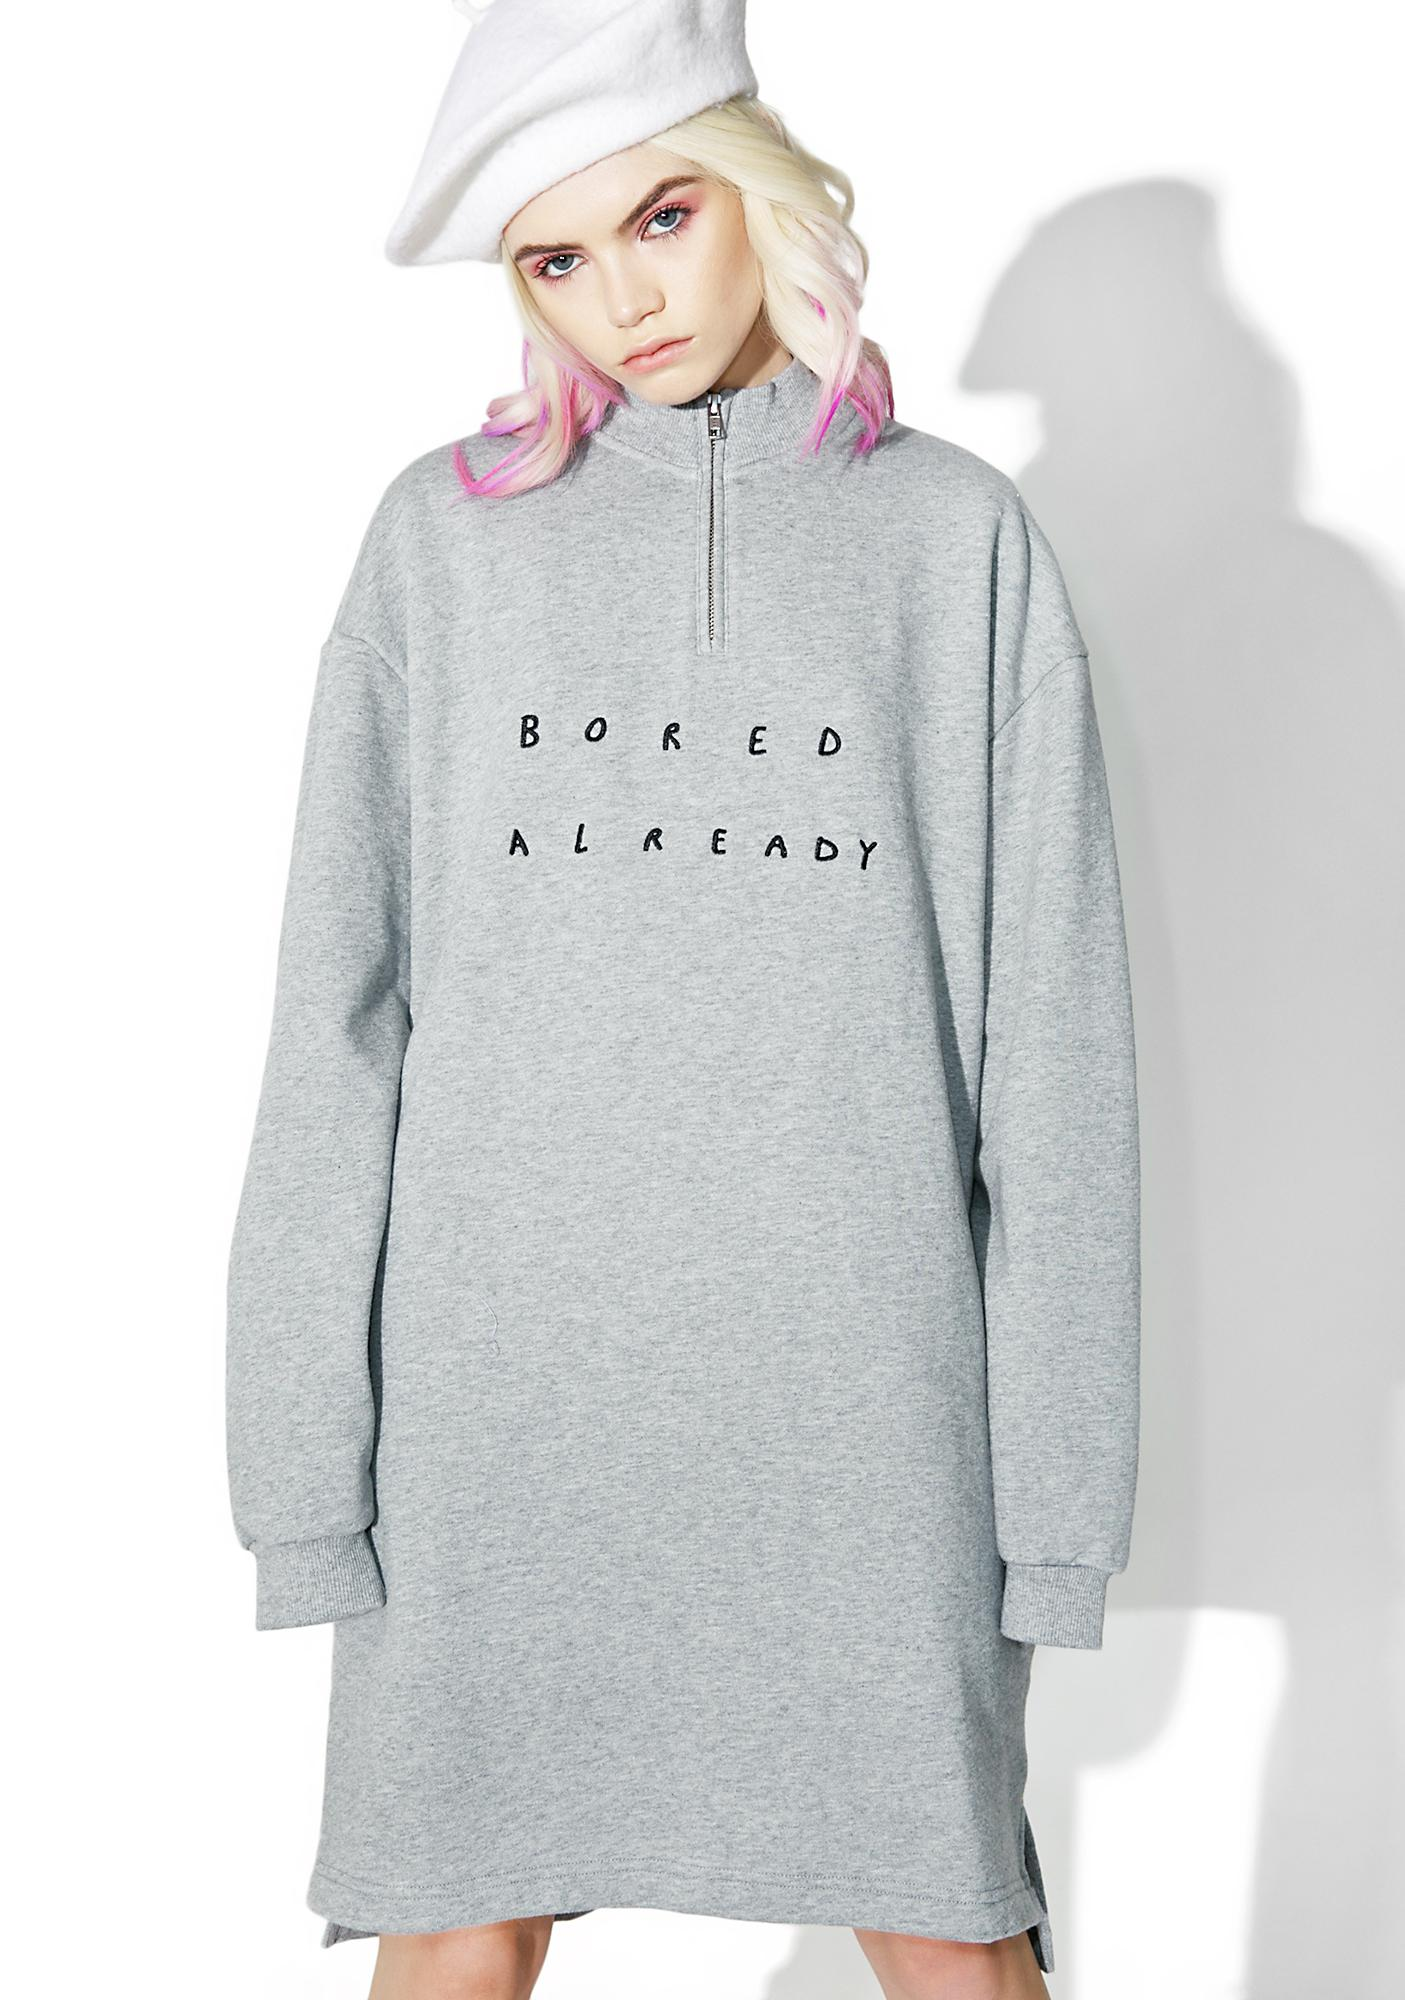 e638aaf49d Lazy Oaf Boring Zip Up Sweatshirt